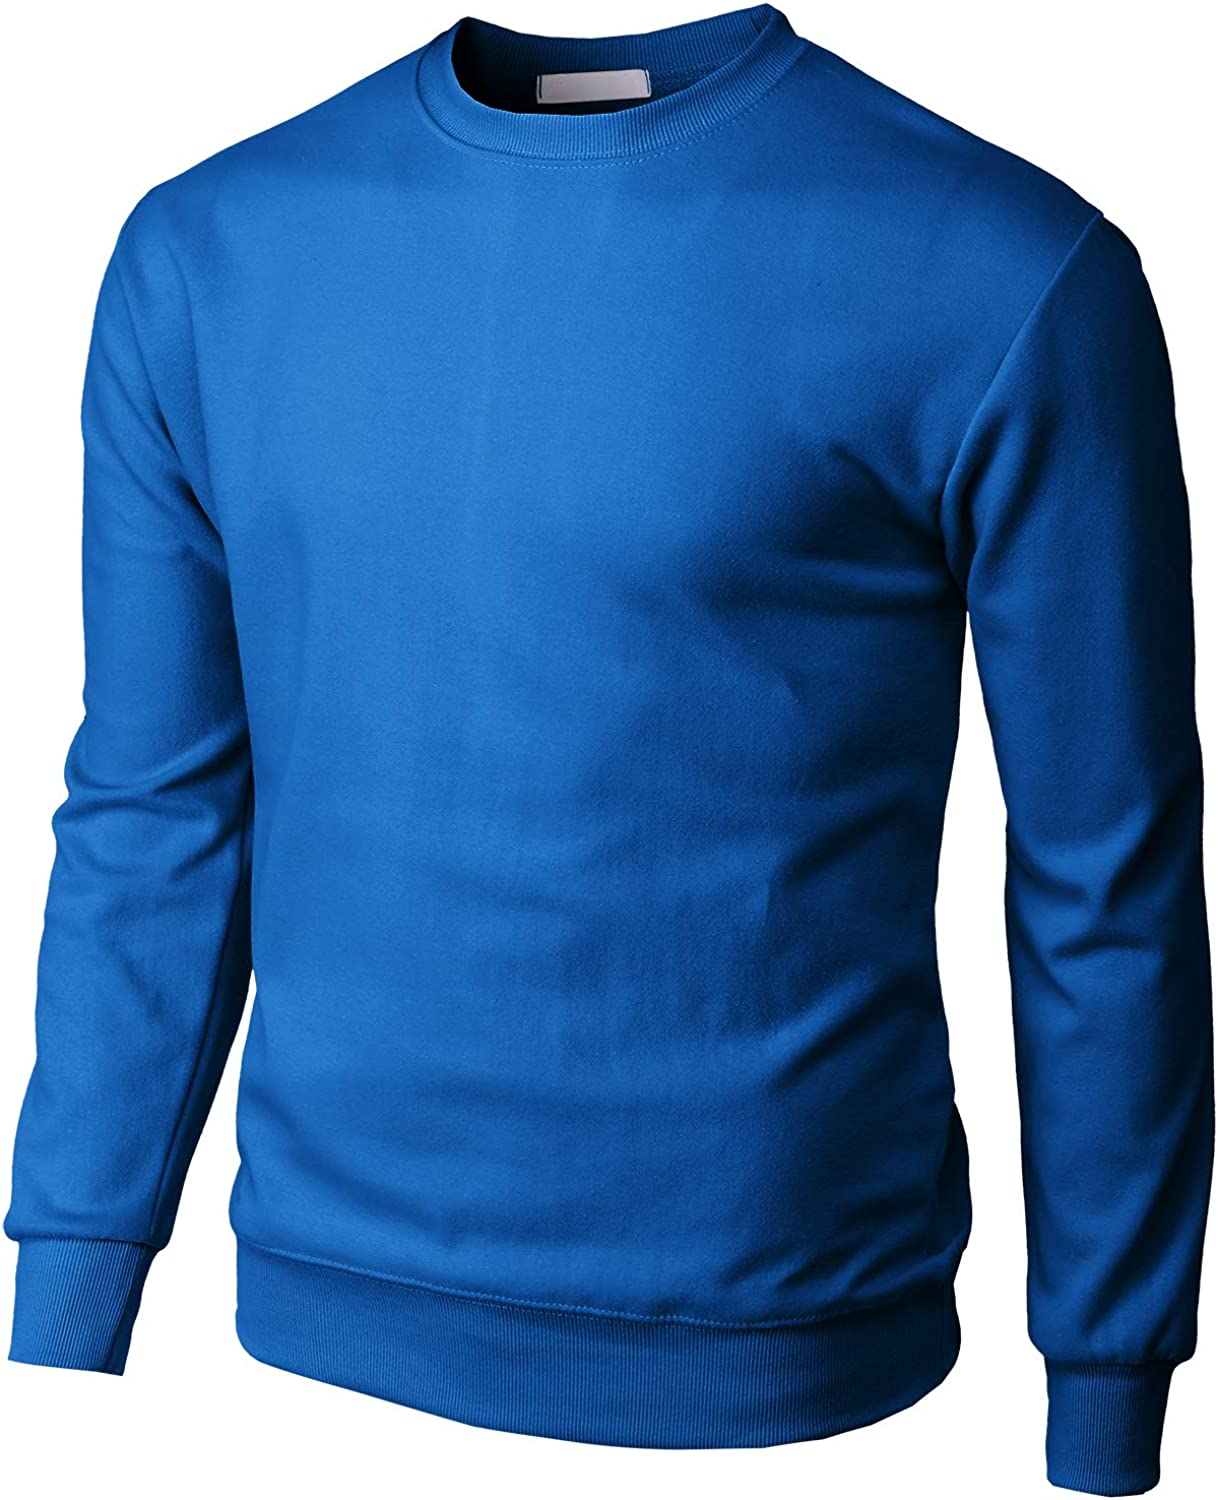 H2H Mens Casual Slim Fit Pullover Sweaters Knitted Tops Lightweight Longsleeve Basic Designed